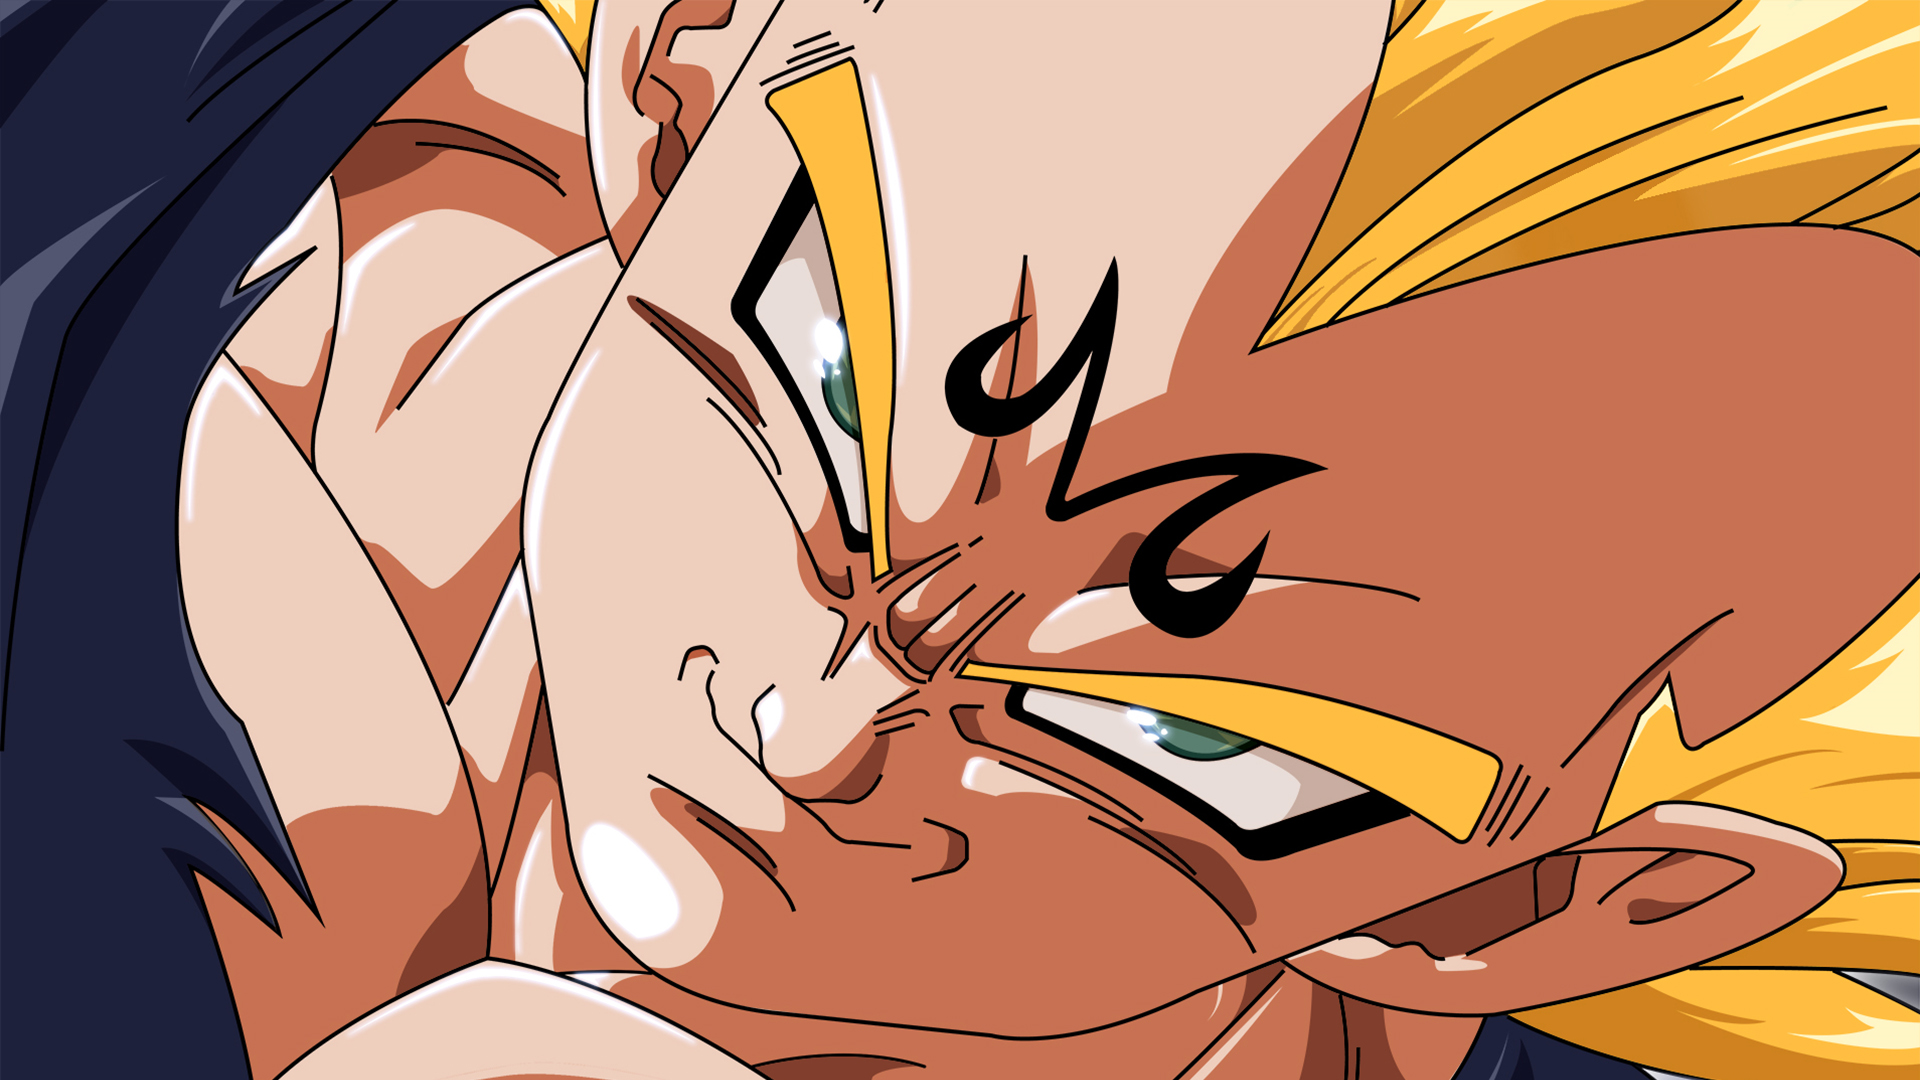 Majin vegeta face hd wallpaper background image 1920x1080 id 681229 wallpaper abyss - Dragon ball z majin vegeta wallpaper ...